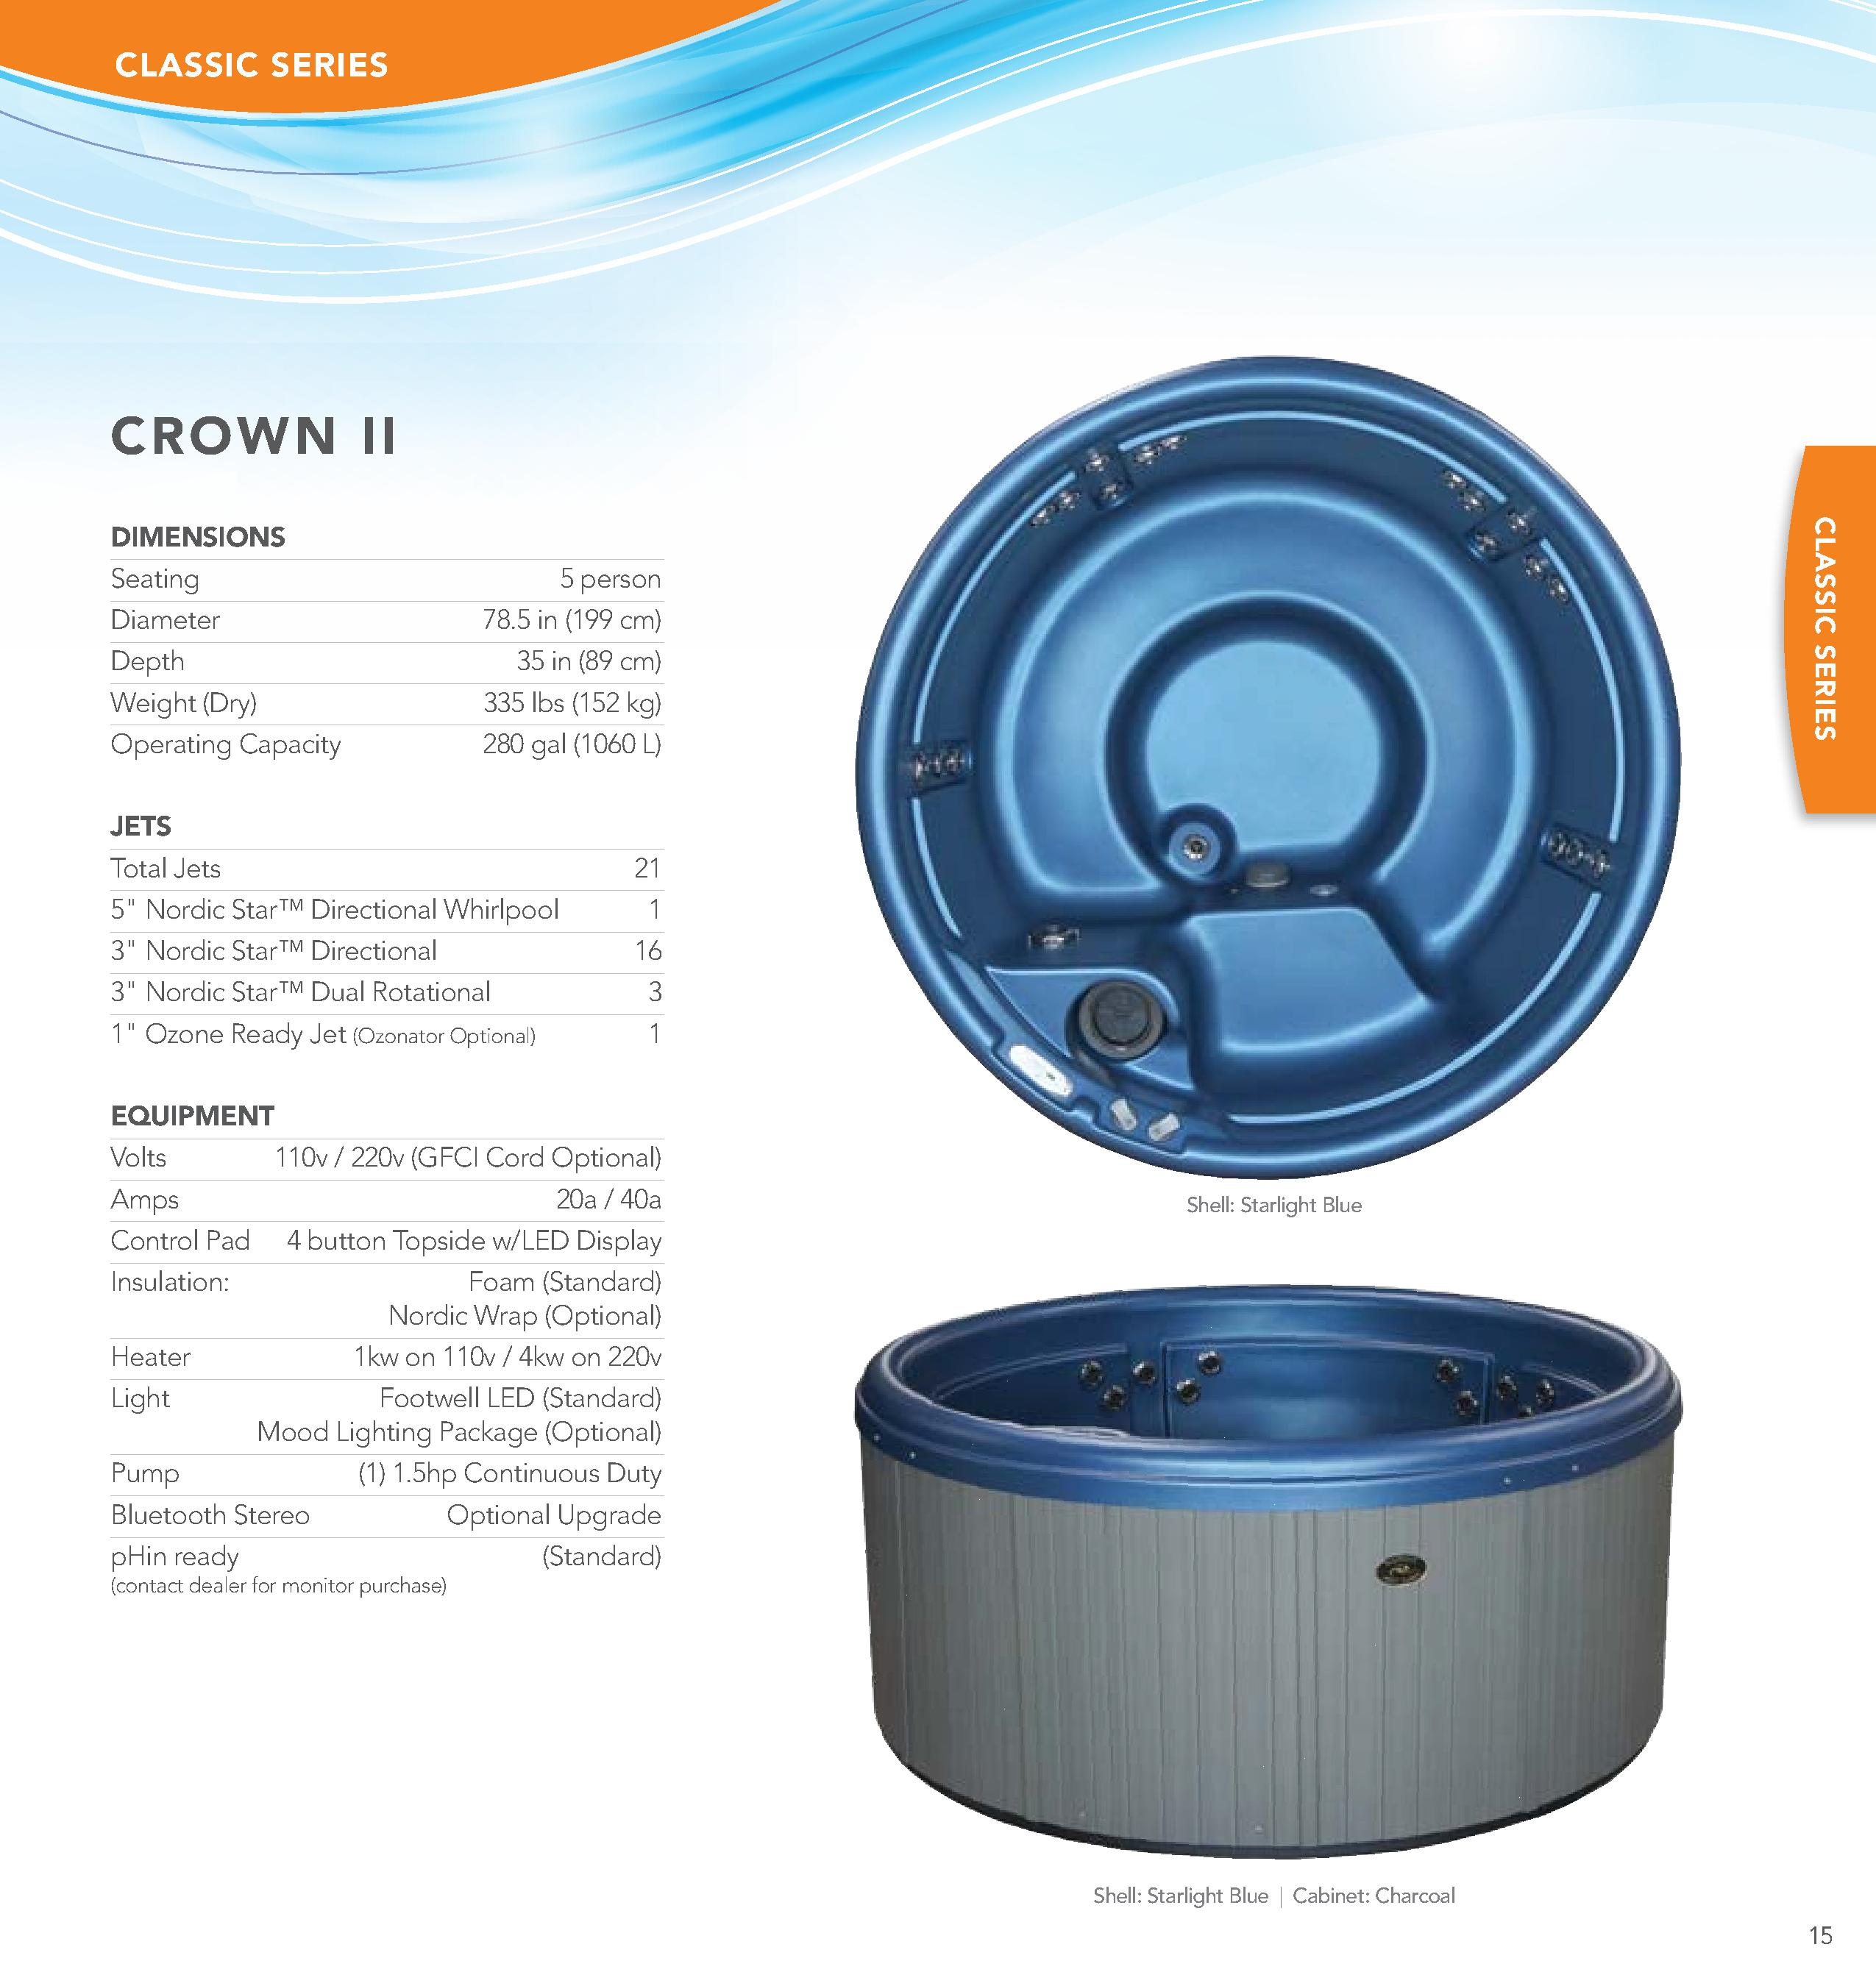 Crown II